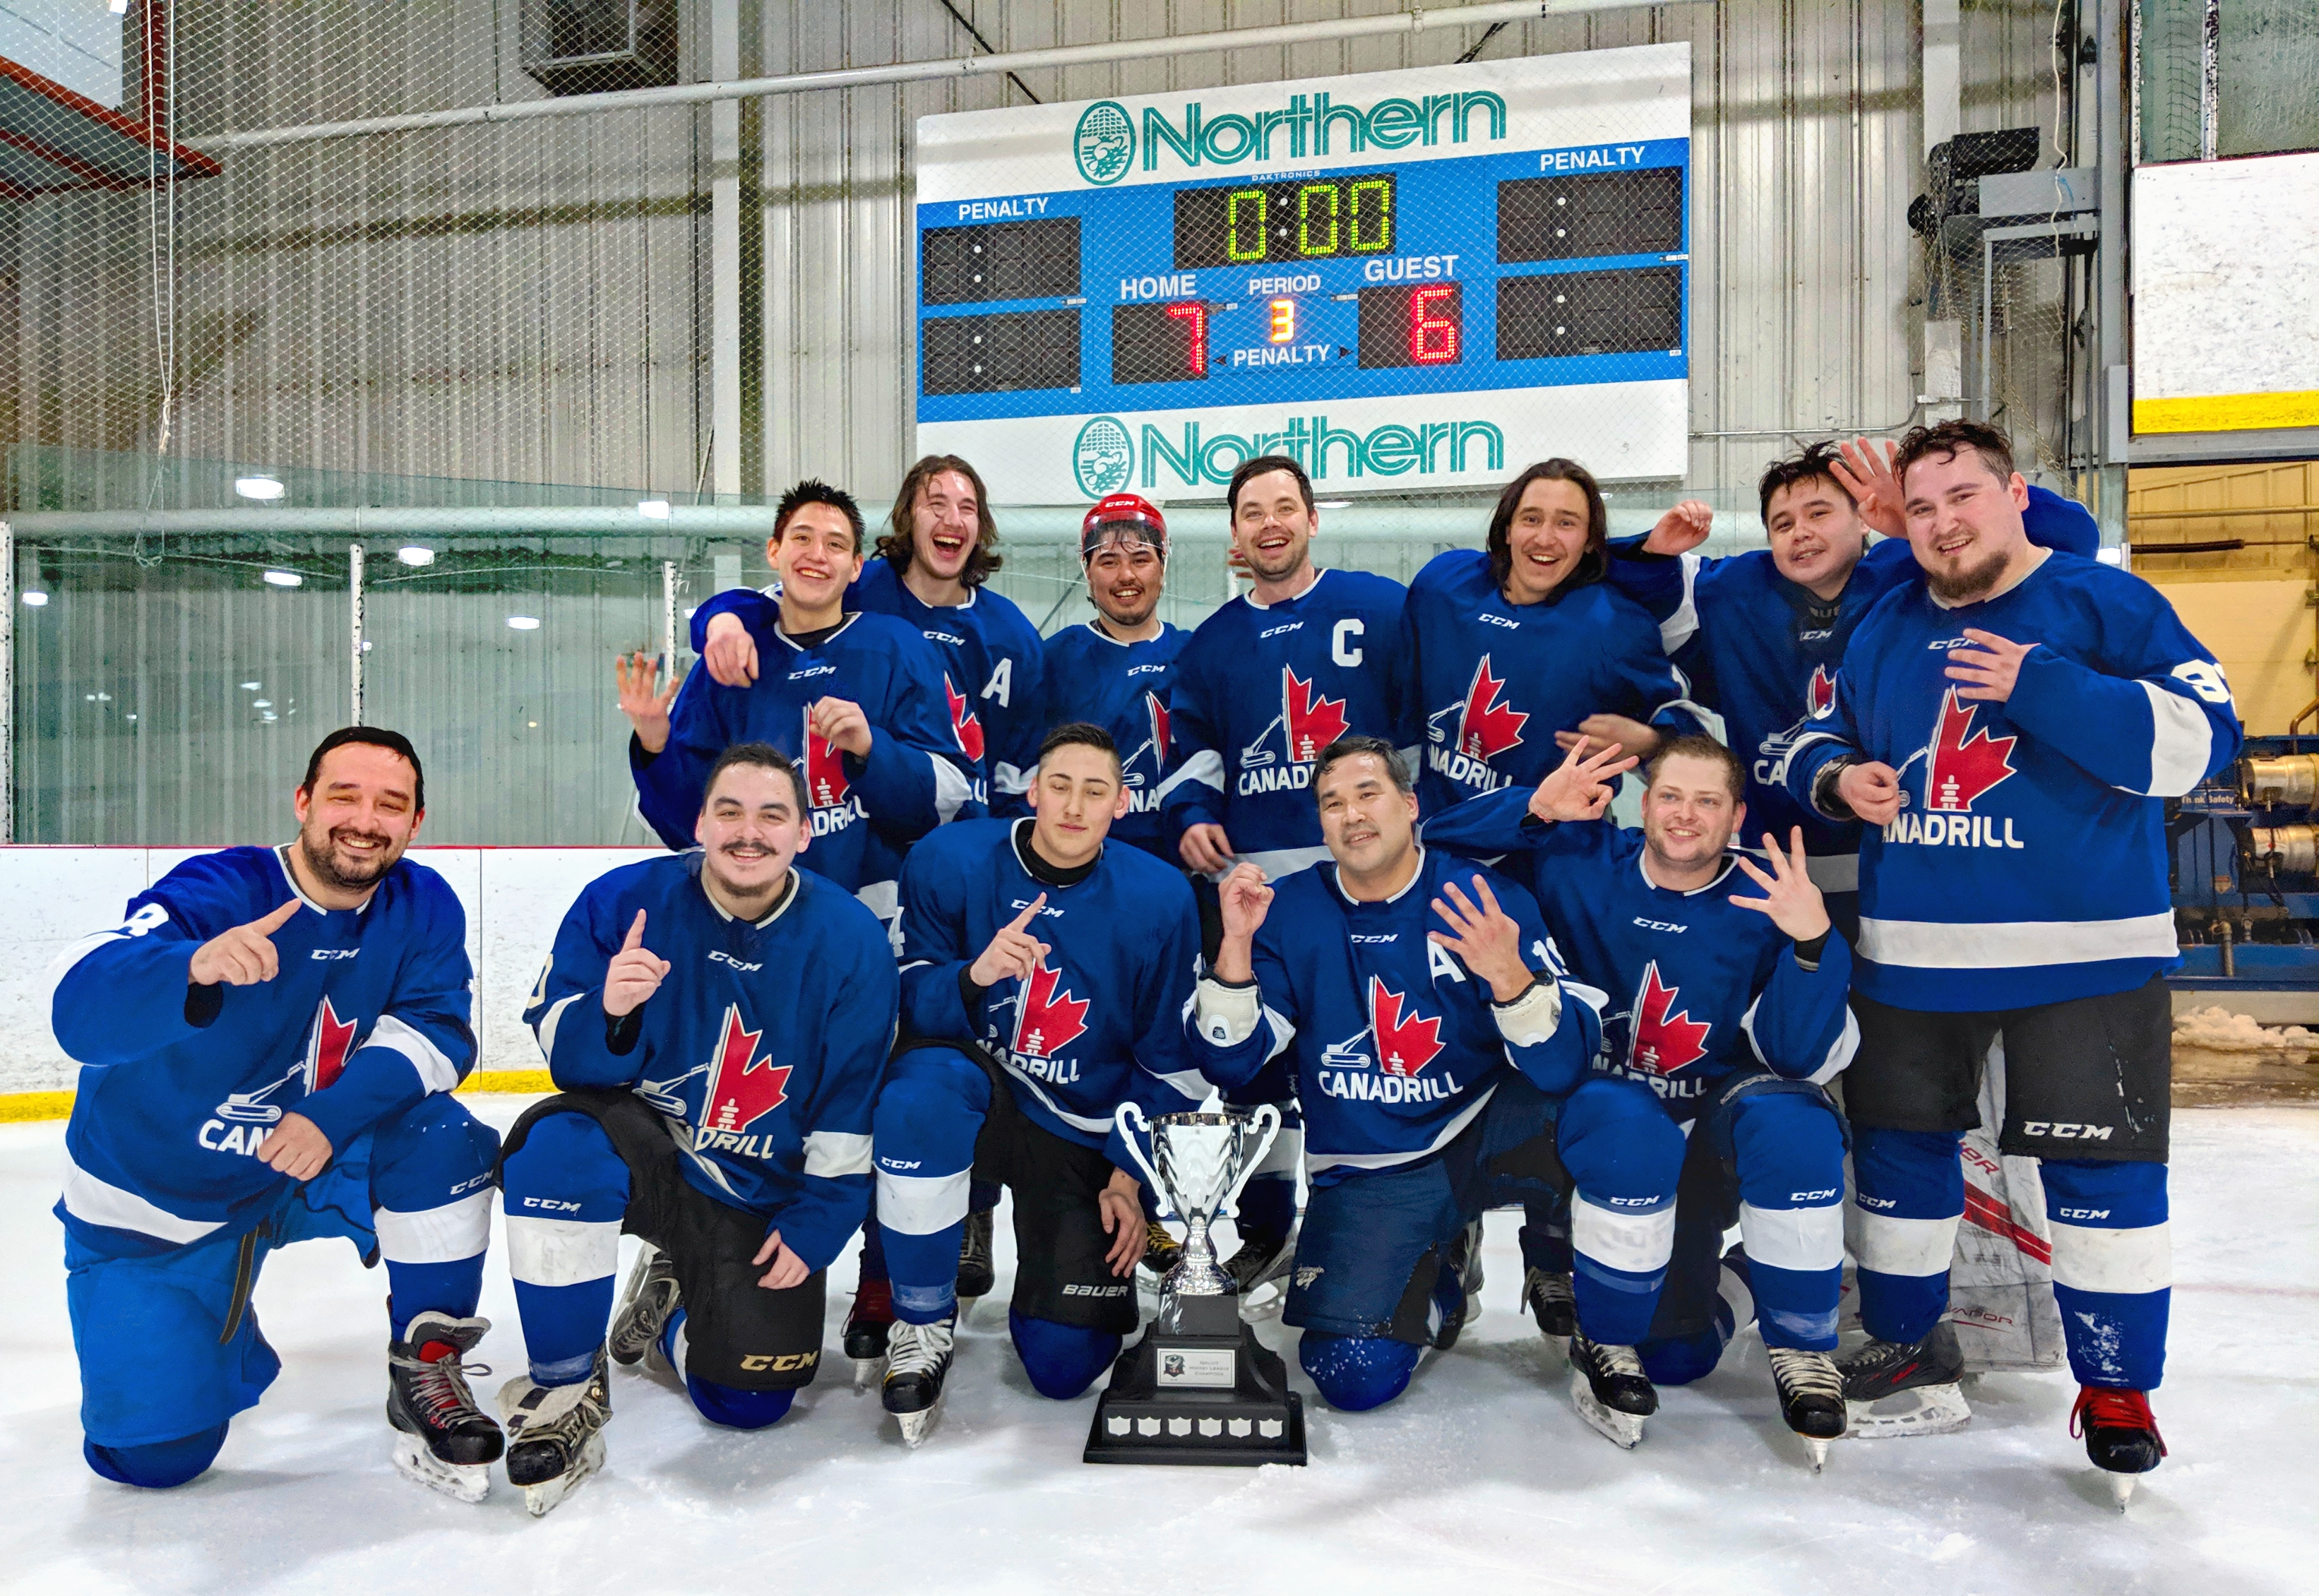 2018-19 Iqaluit Senior Hockey League season